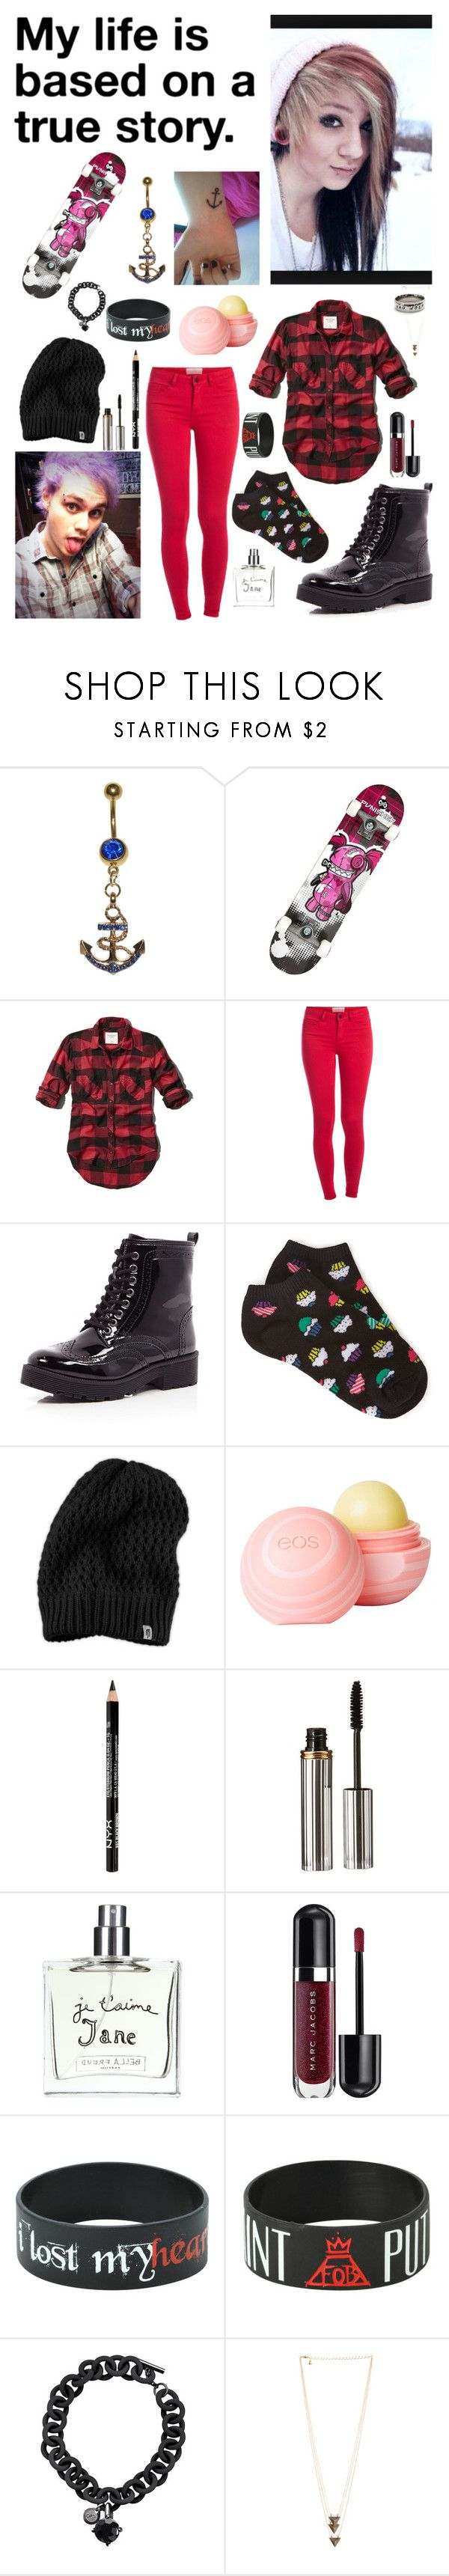 """""Creepin round the mall with Michael"" - Summer"" by nationalnerd ❤ liked on Polyvore featuring Punisher, Abercrombie & Fitch, Pieces, River Island, Forever 21, The North Face, dELiA*s, La Bella Donna, Bella Freud and Marc Jacobs"